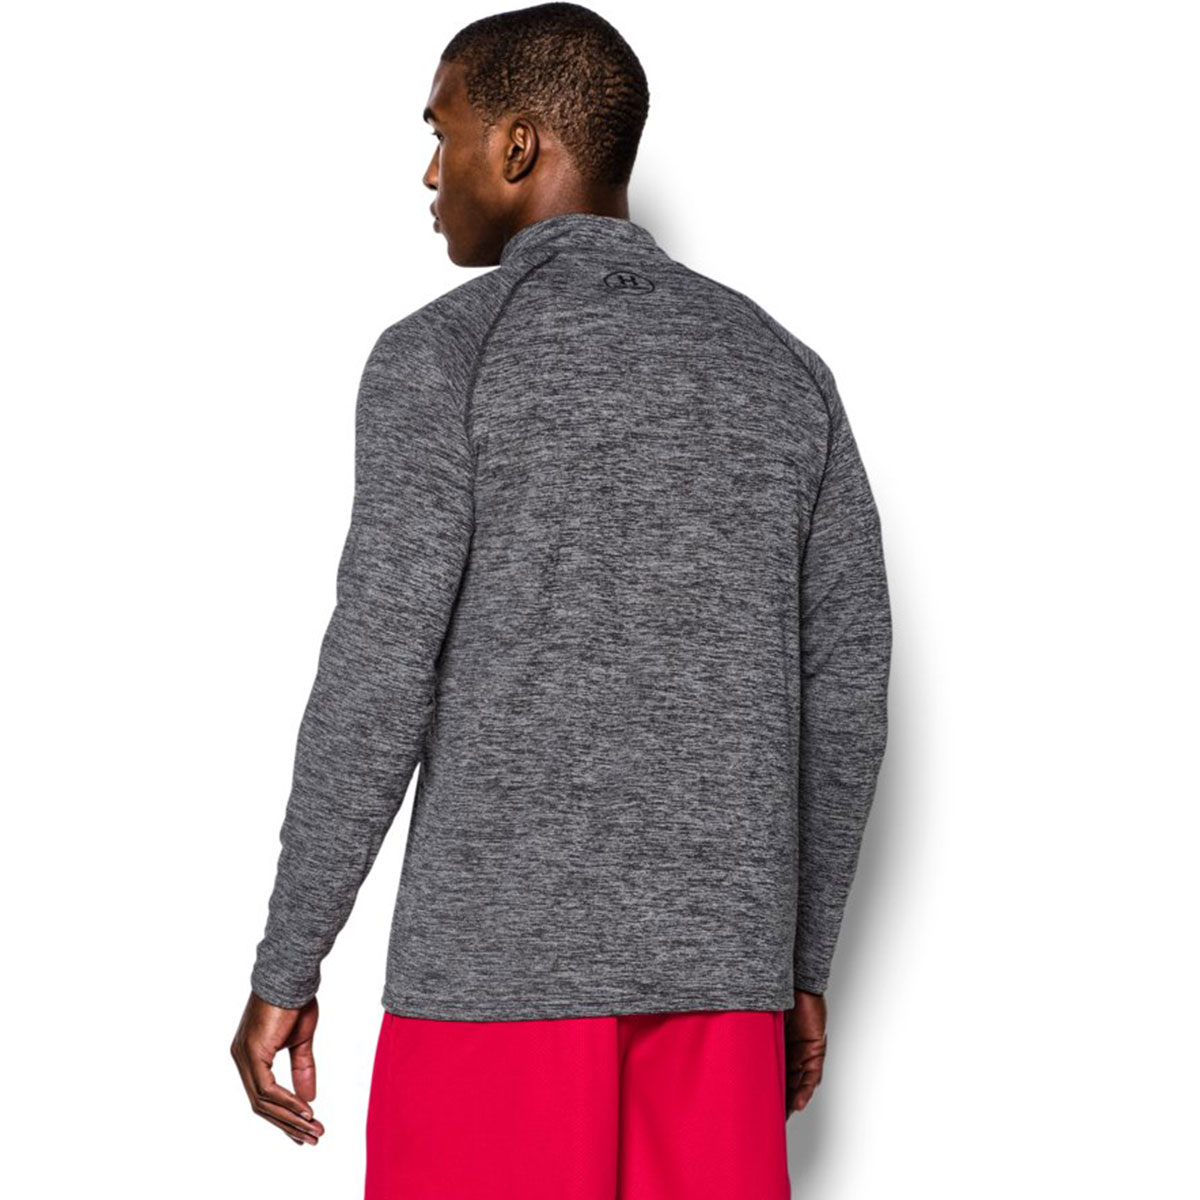 Under-Armour-Mens-UA-Tech-1-4-Zip-Long-Sleeve-Top-Workout-Layer-27-OFF-RRP thumbnail 19